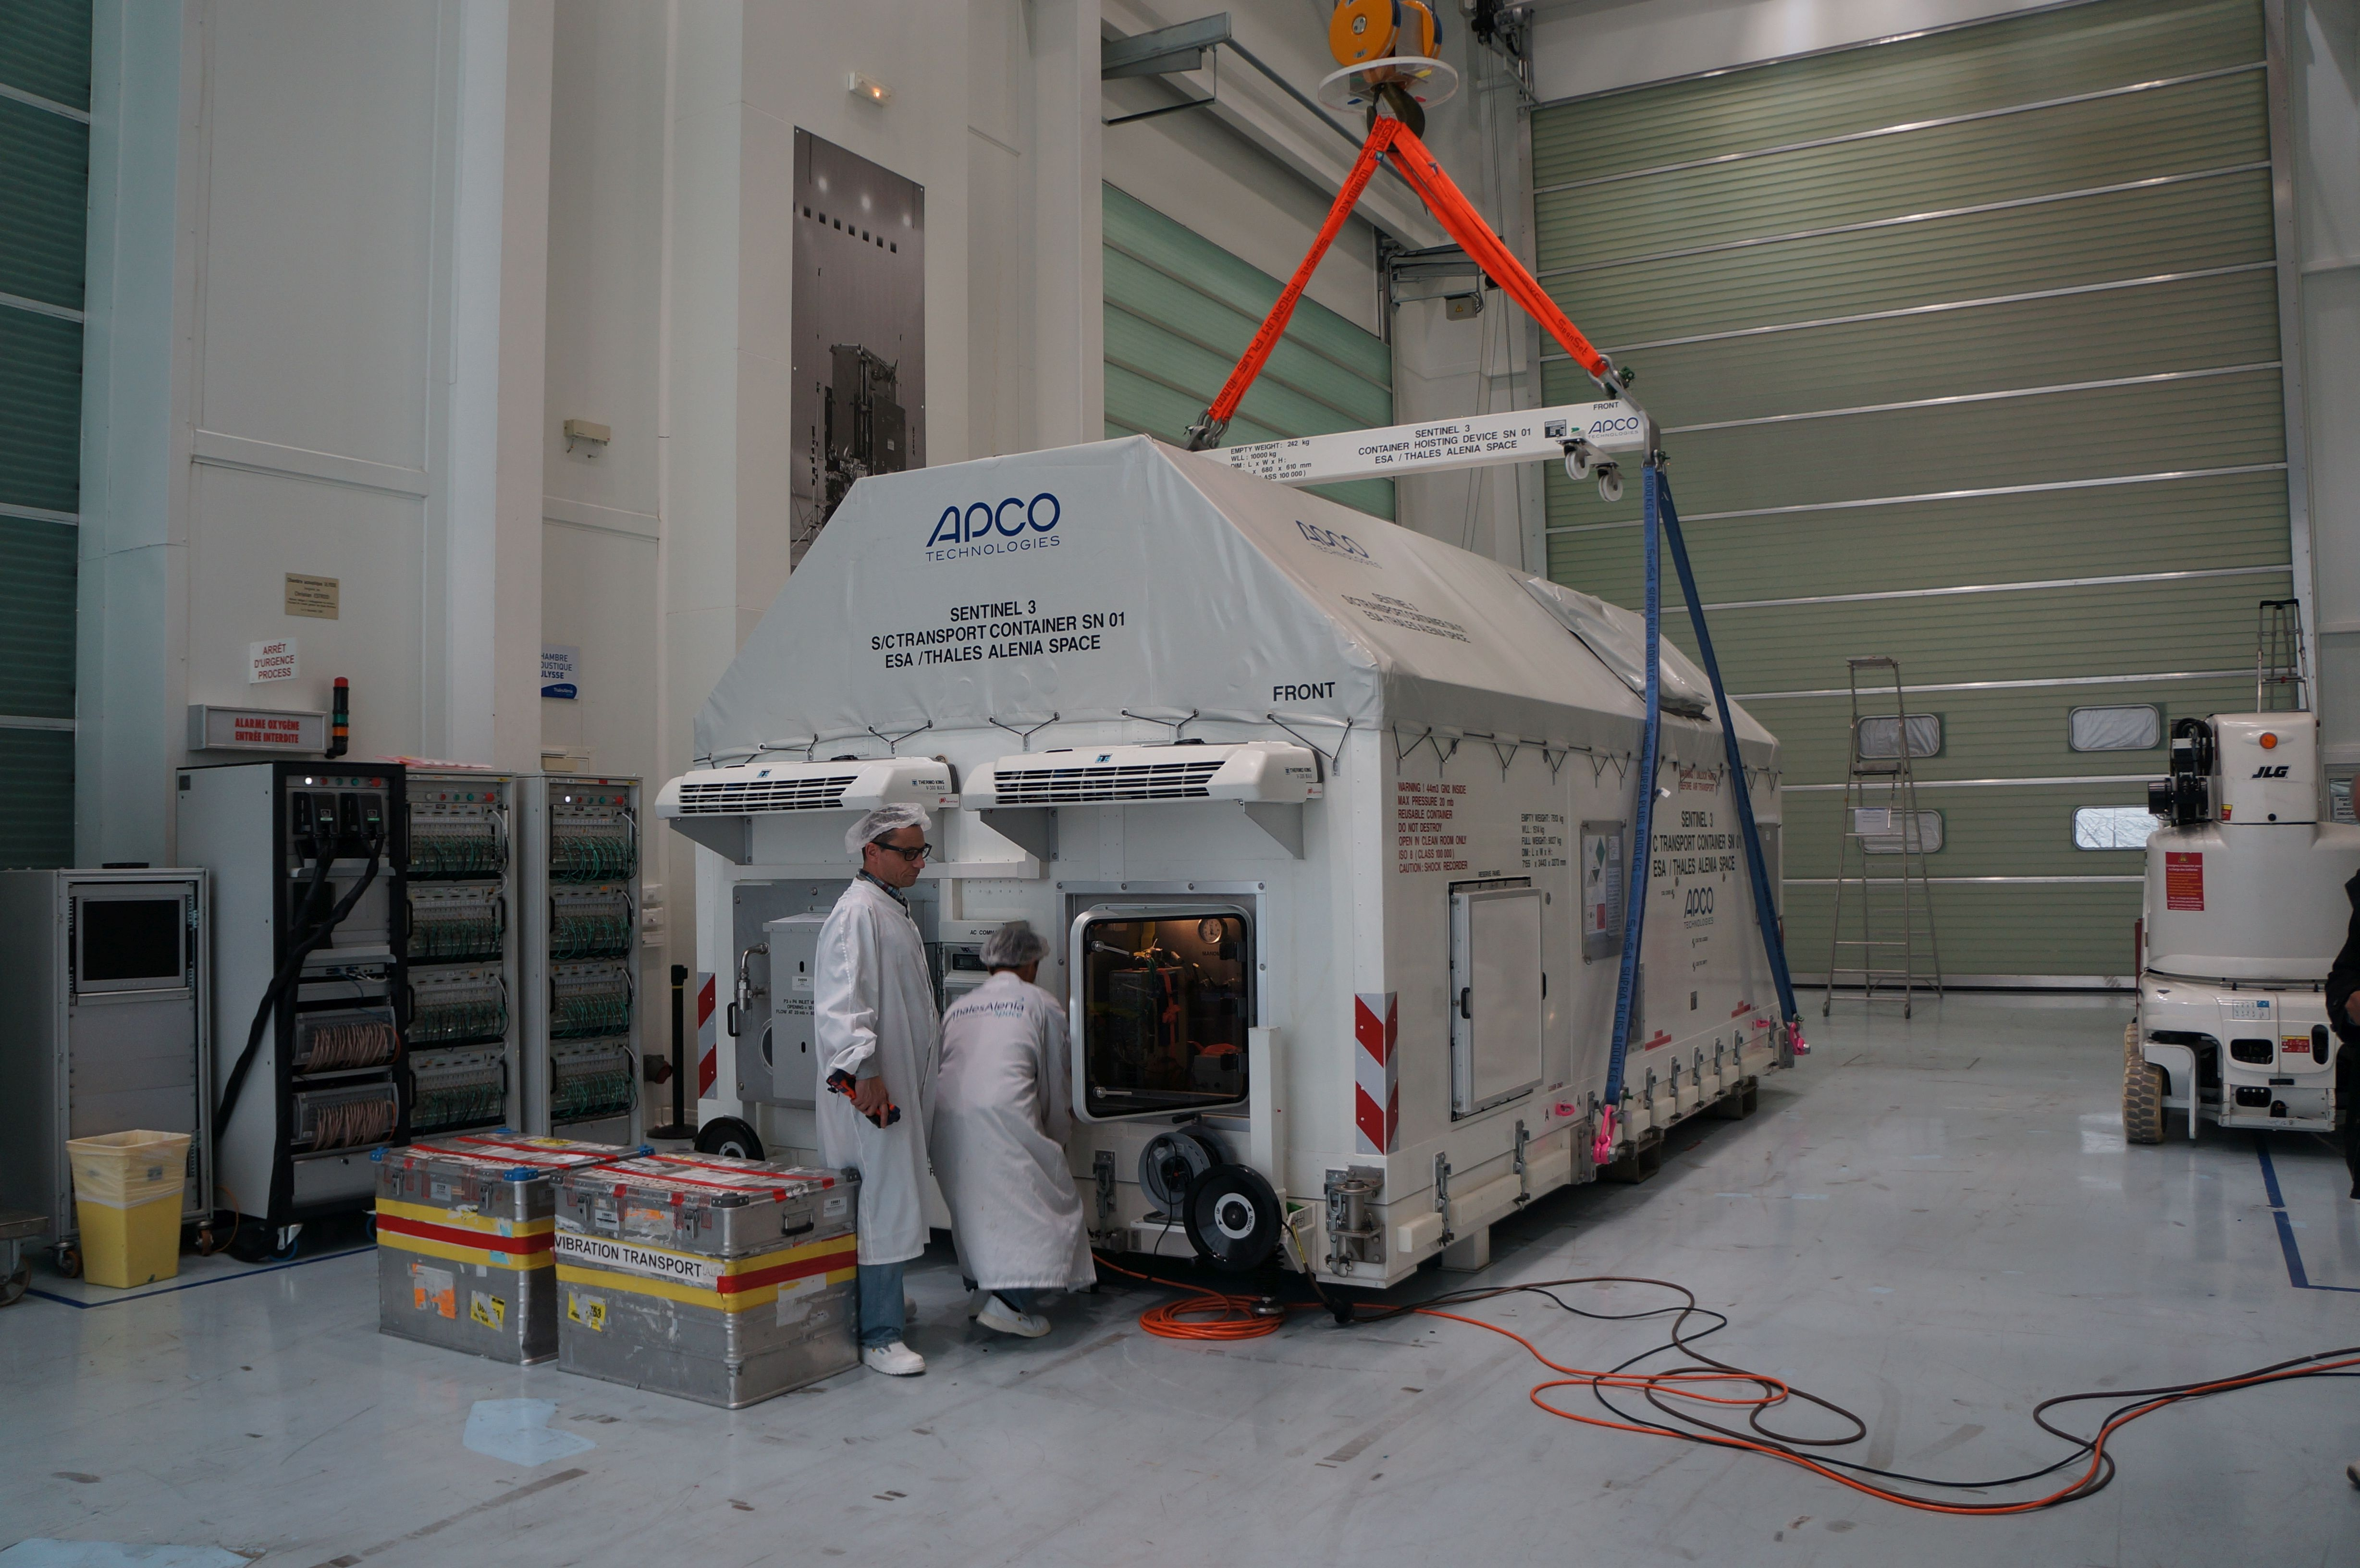 bpc_sentinel-3a-wrapped-up.jpg